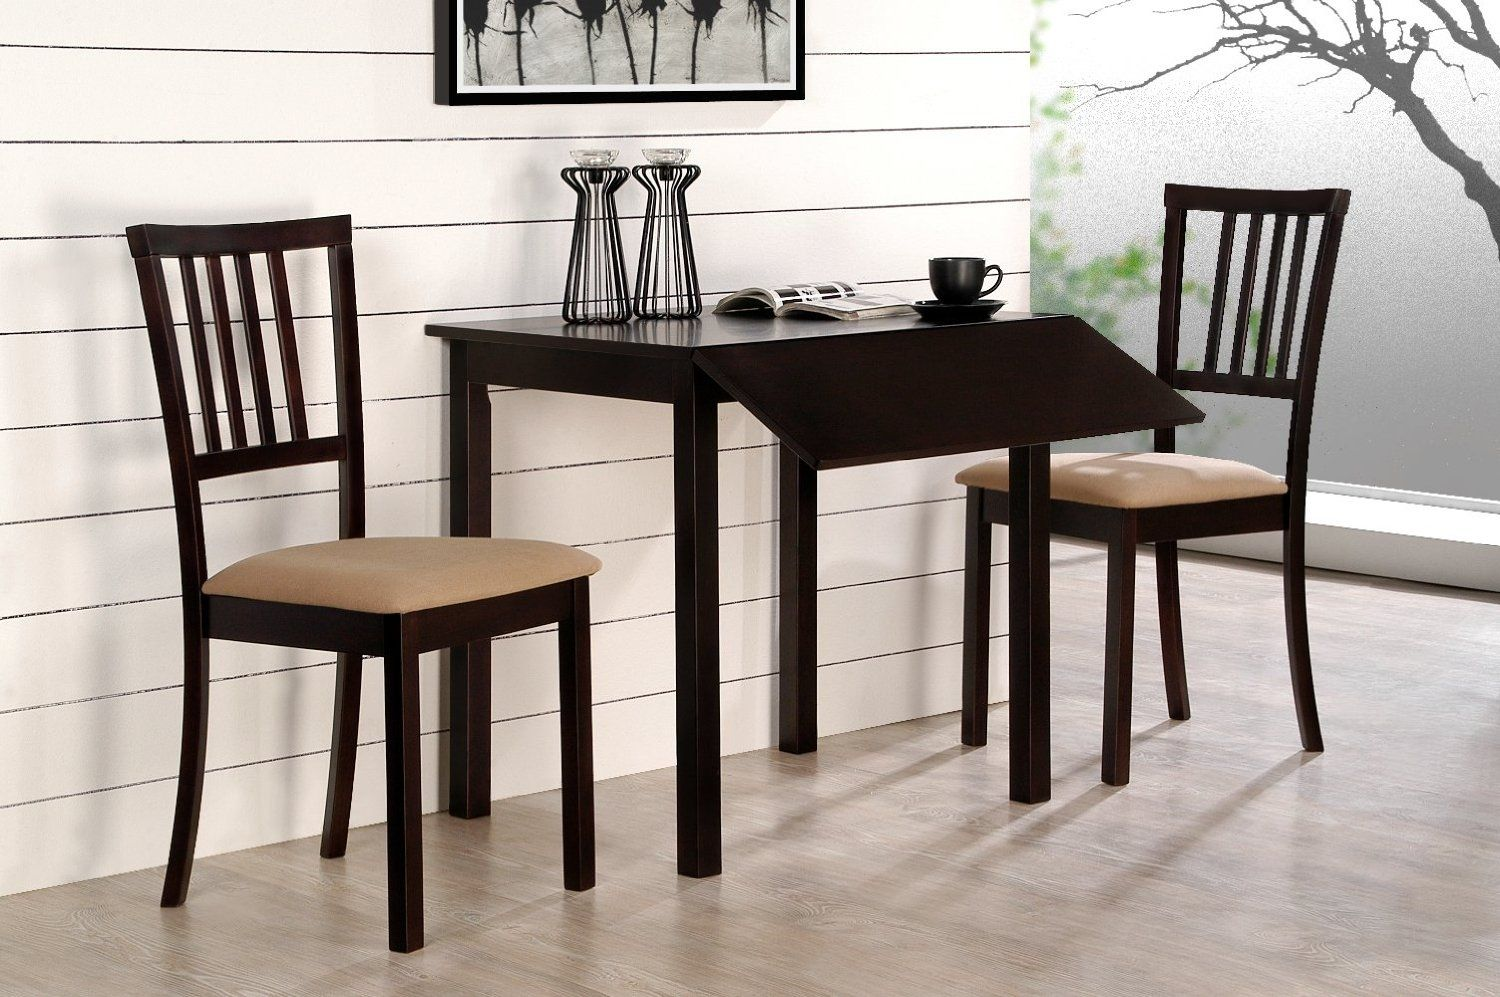 Small kitchen tables black manageditservicesatlanta